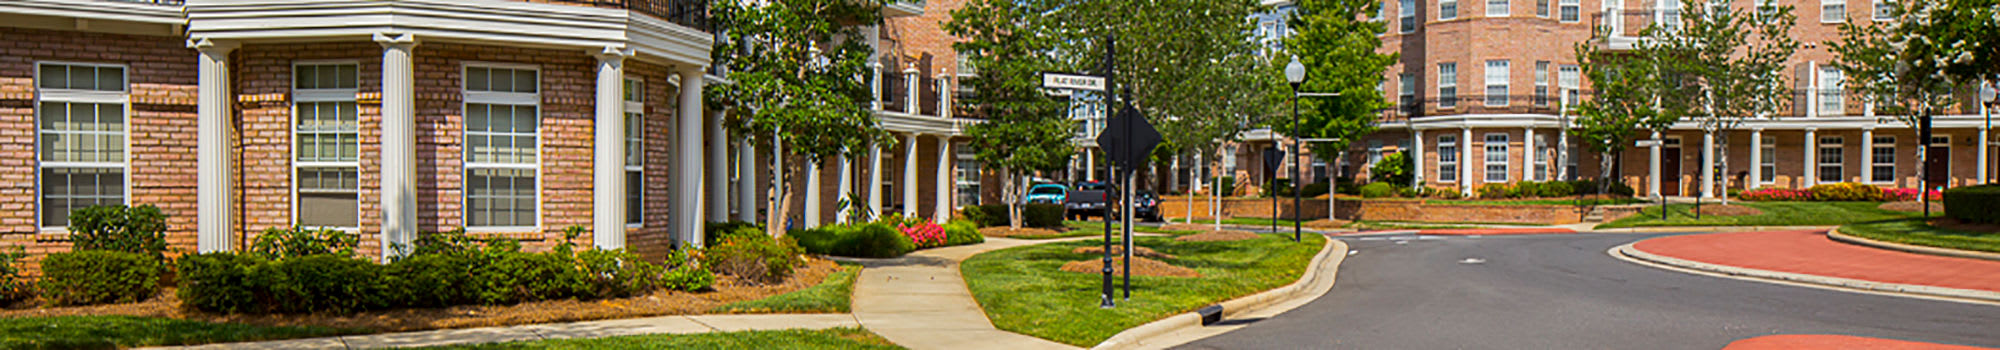 Get directions to Worthington Luxury Apartments